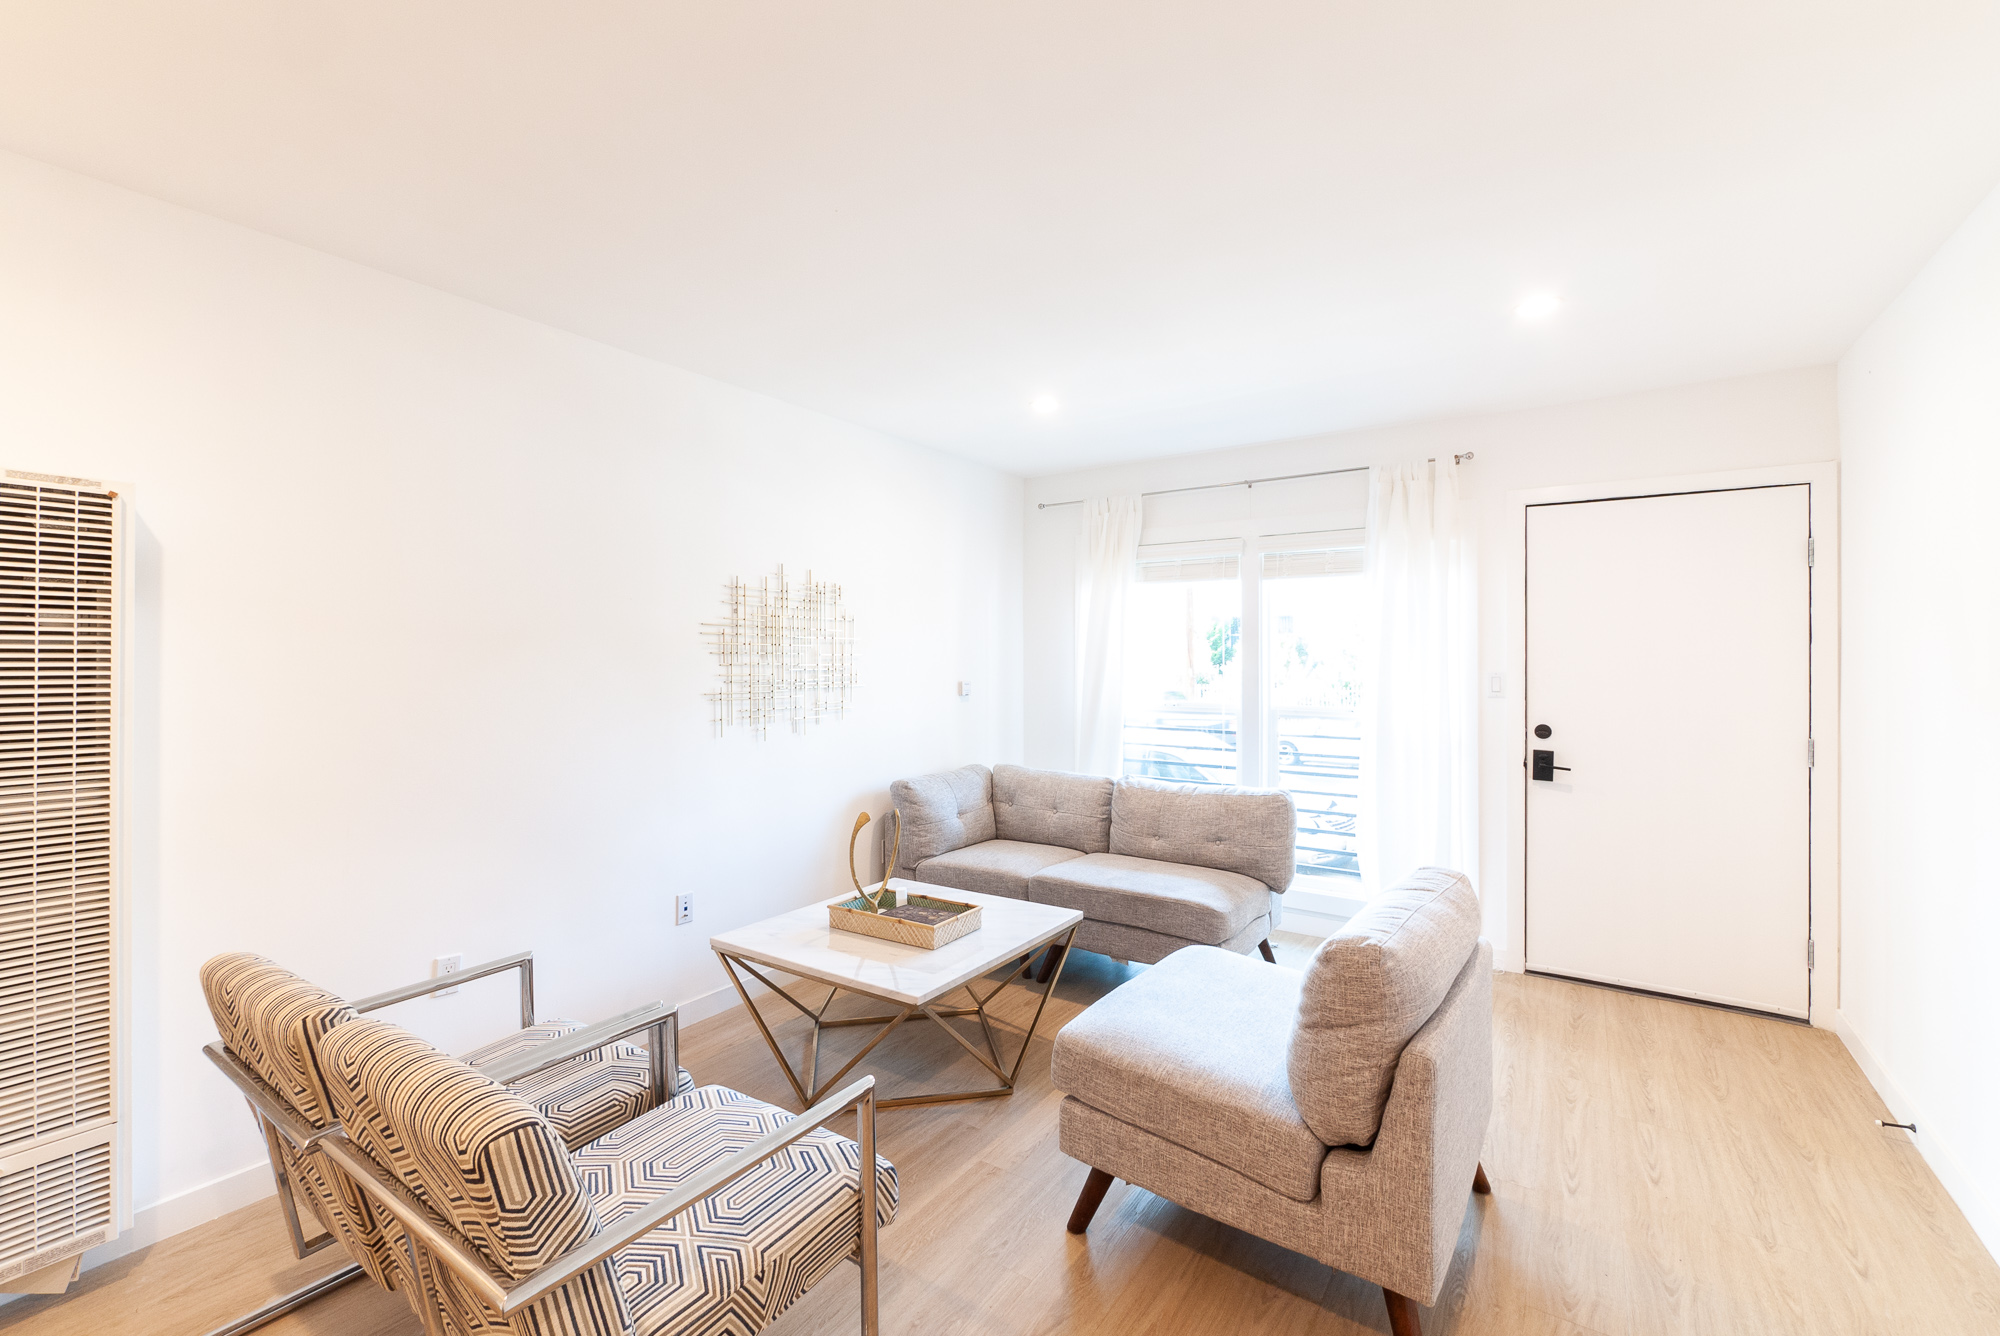 Livin' Large in Ktown!  Glorious Just Renovated 1 bd/1bth With Brand New Appliances In-Unit WD-AC